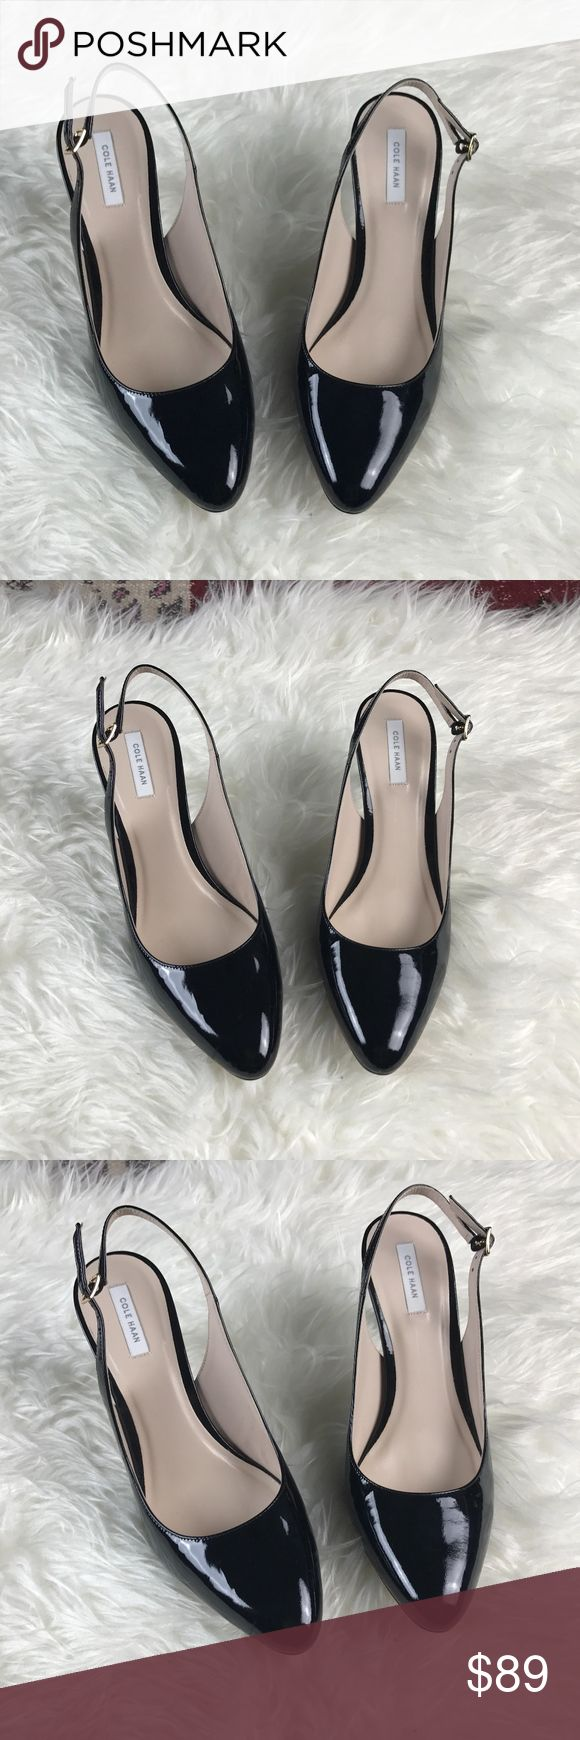 "{Cole Haan} Black Patent Leather Slingback Pumps Brand New with Nordstrom Rack Tag Gold Hardware 3.5"" Heel  Retail $248 Silver Pen mark on the bottom see last picture Cole Haan Shoes Heels"